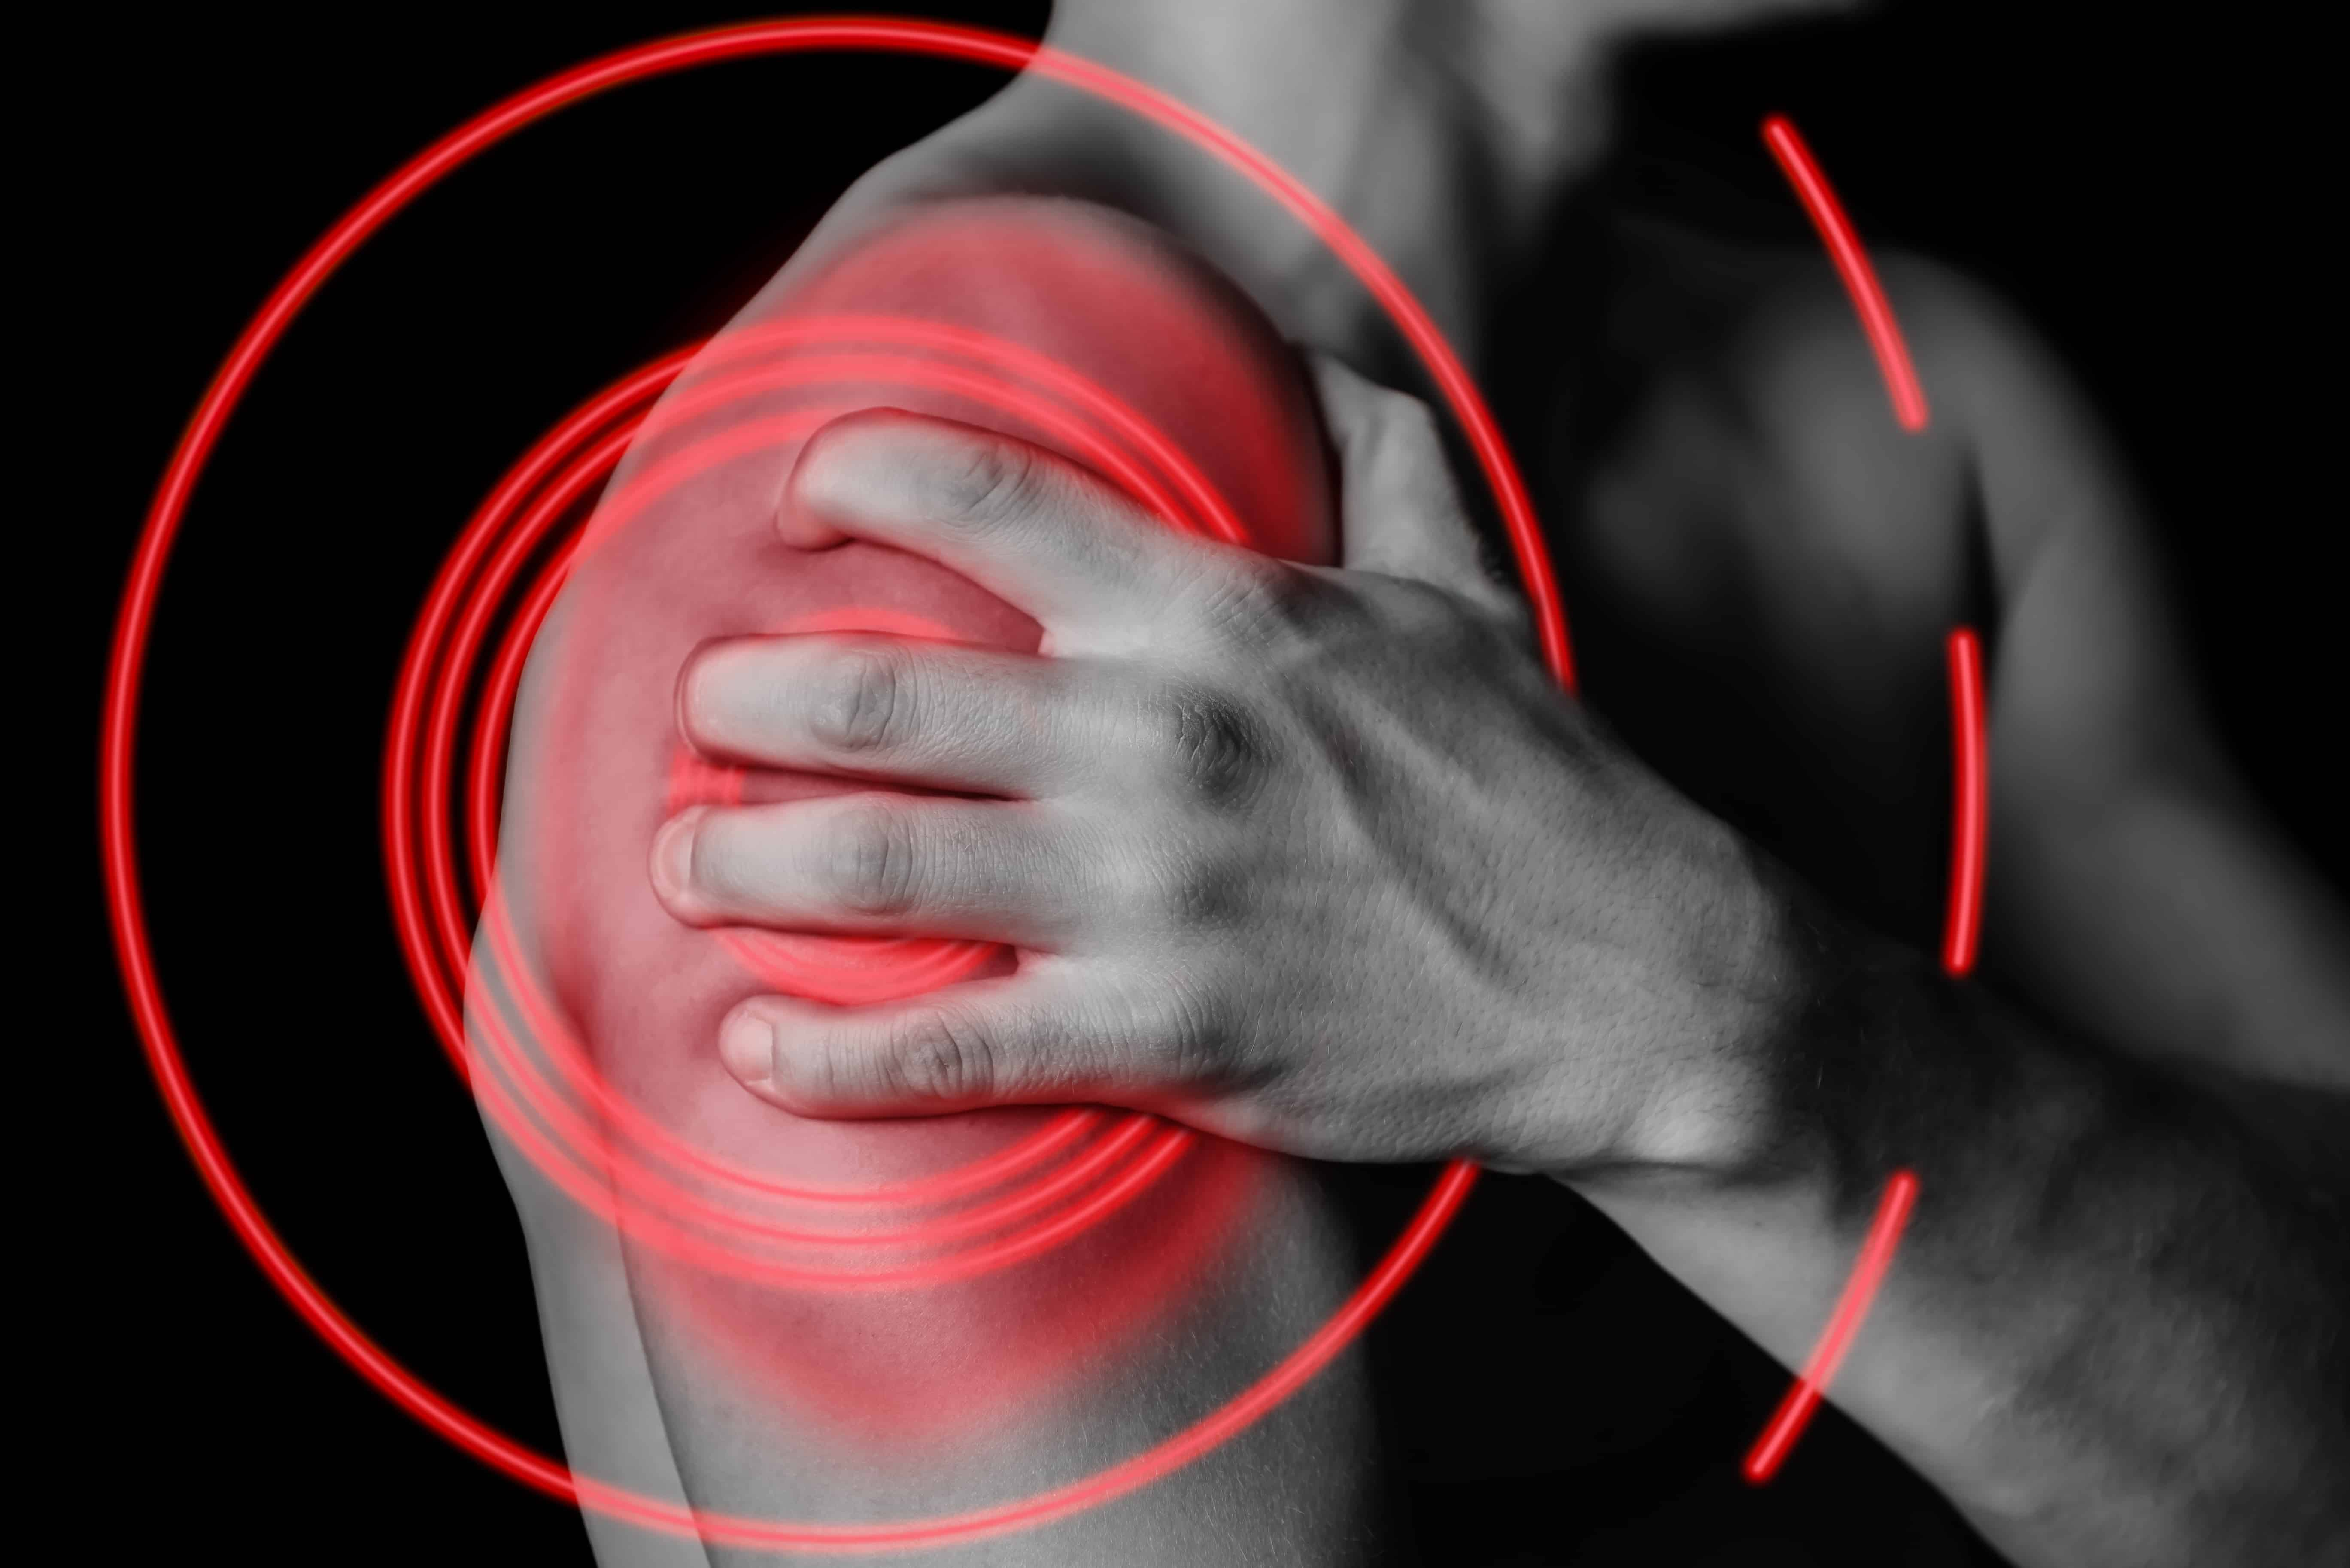 Workers' compensation for shoulder pain